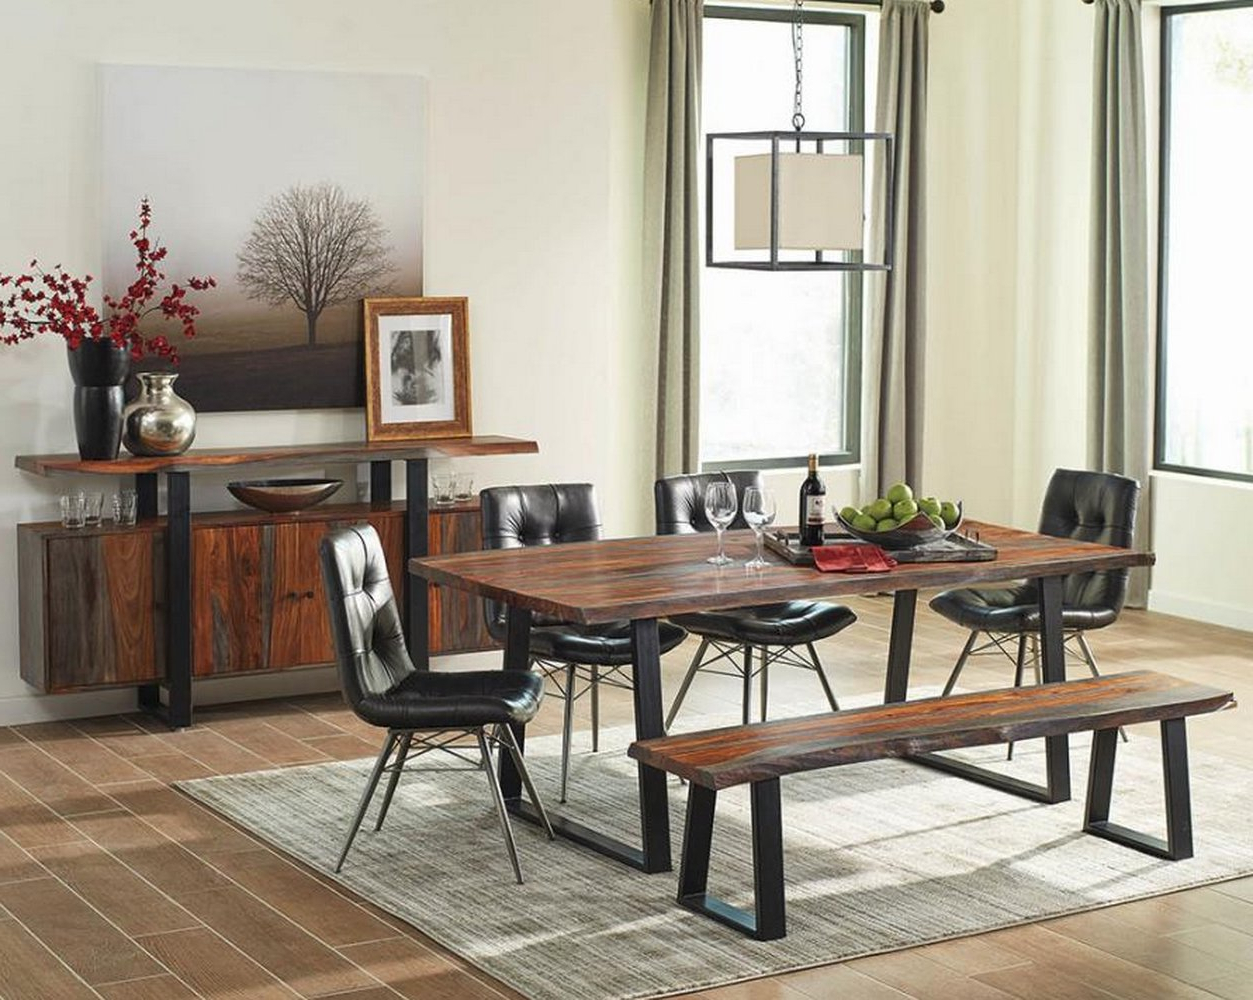 Wayfair Intended For Current Shepparton Vintage 3 Piece Dining Sets (View 13 of 25)